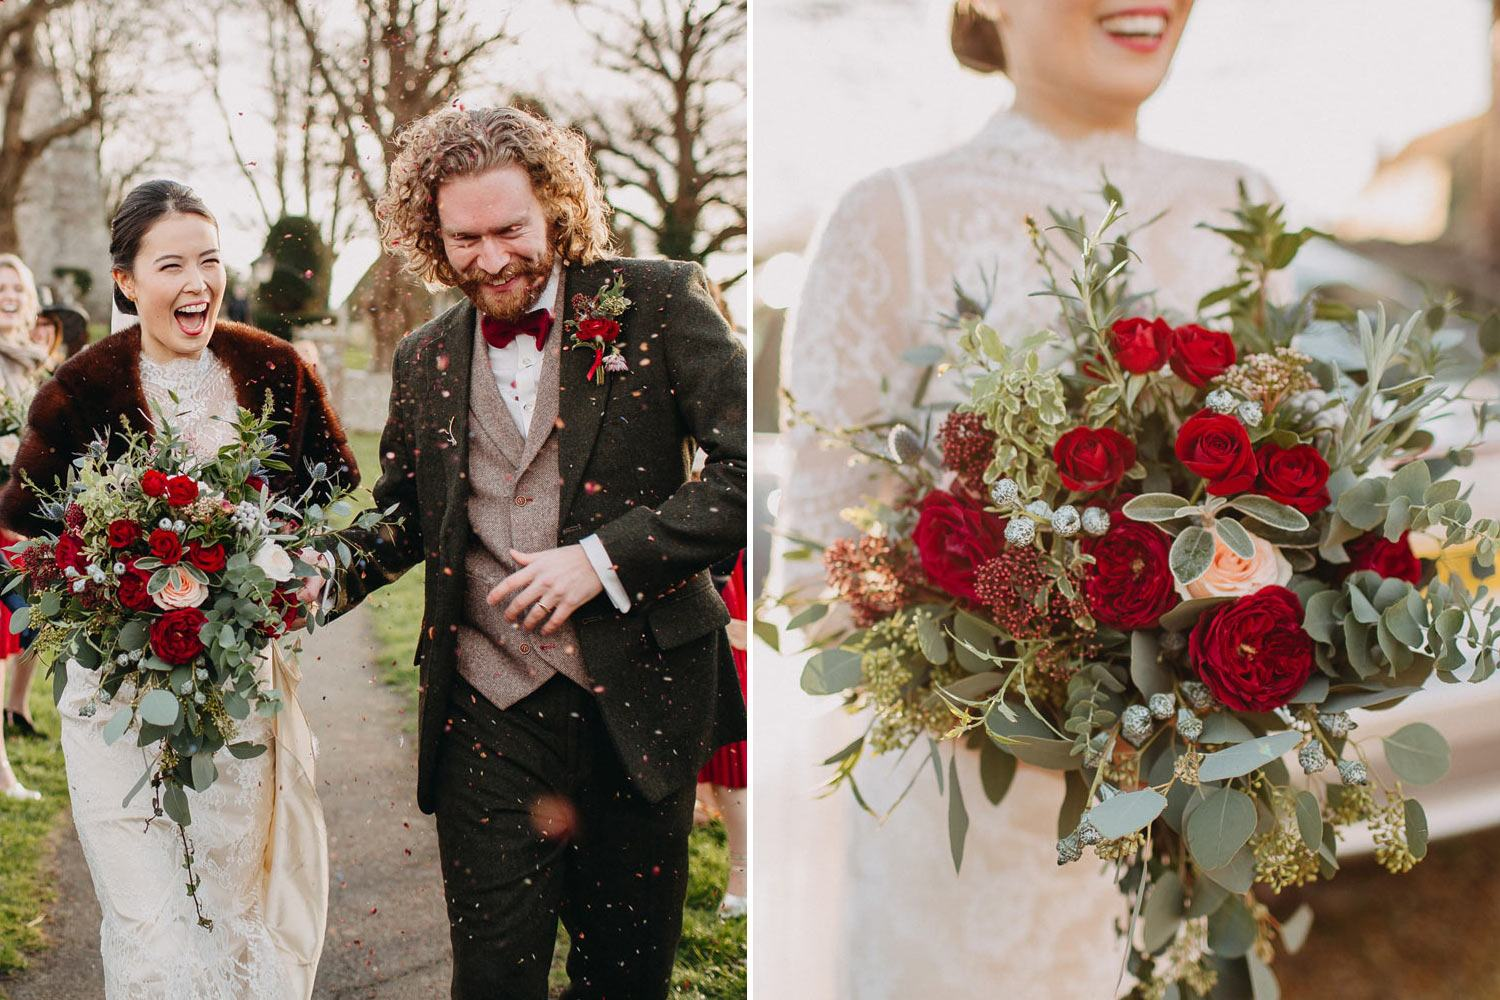 Winter bride and groom with winter flowers